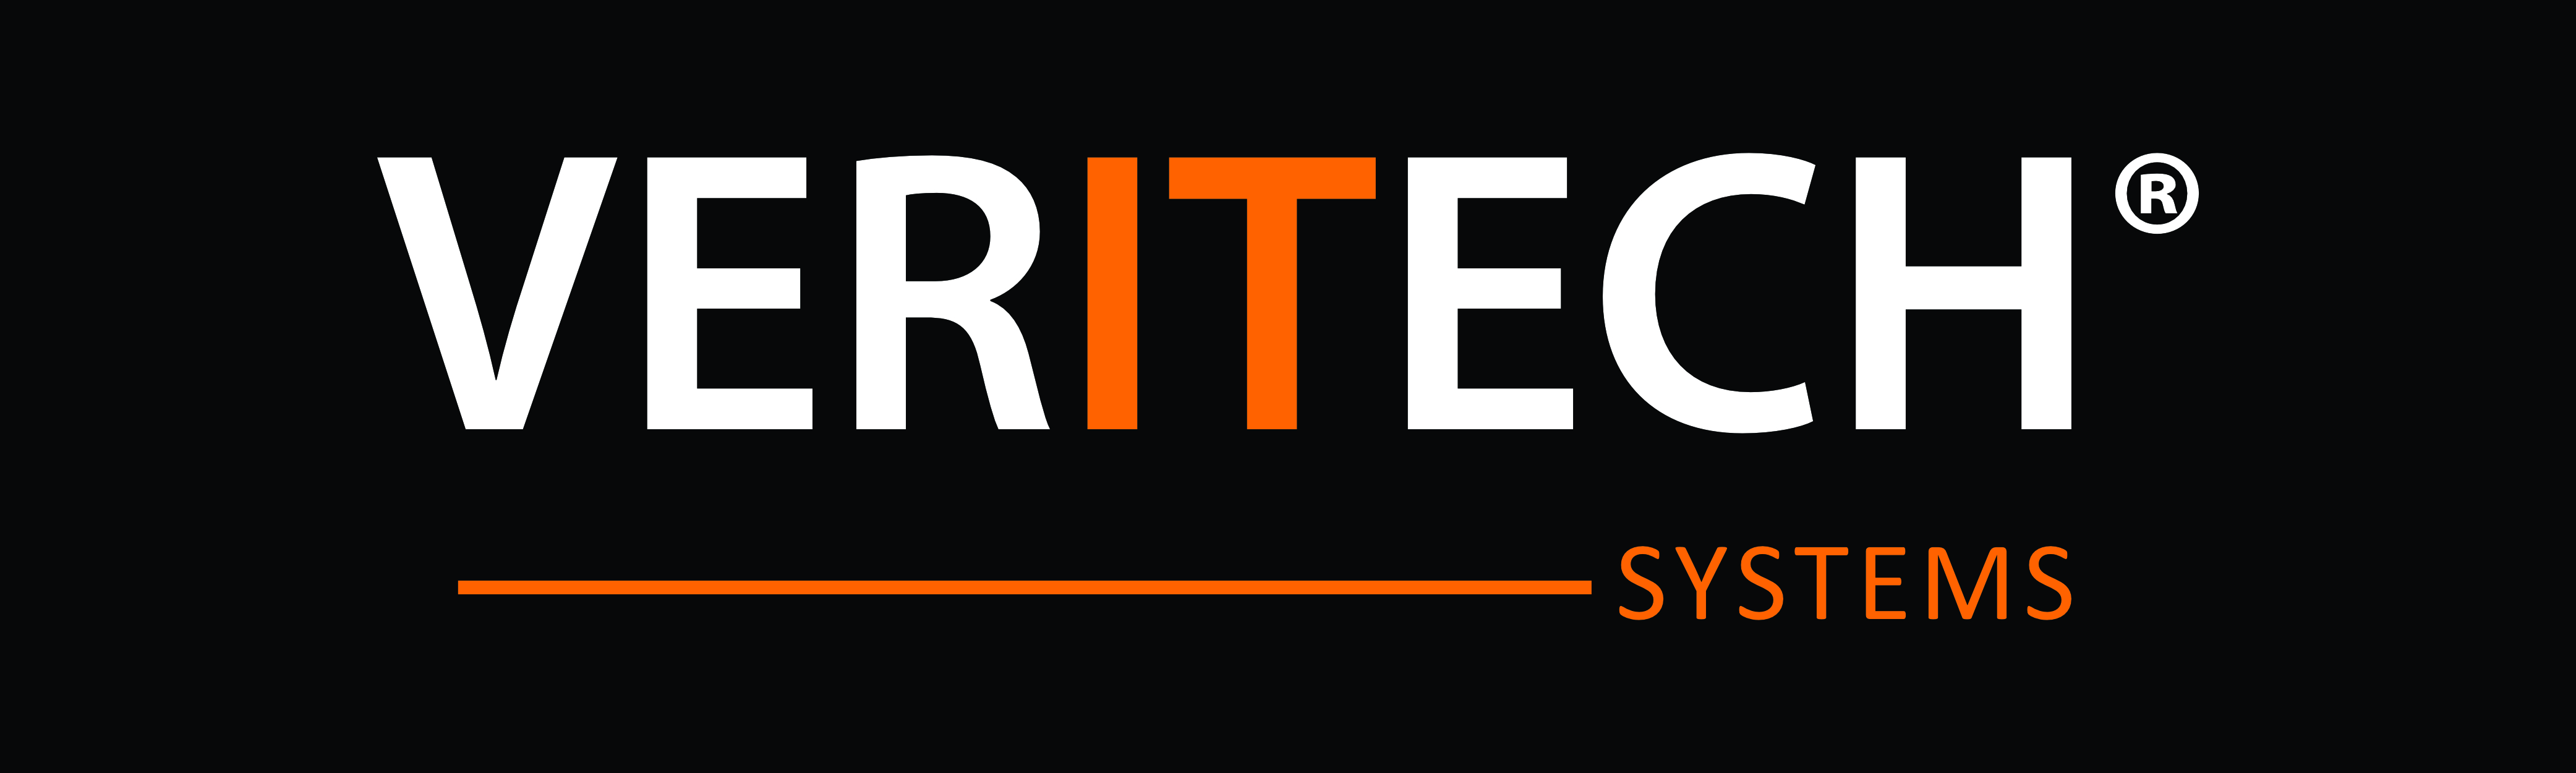 Veritech System Security Company Logo